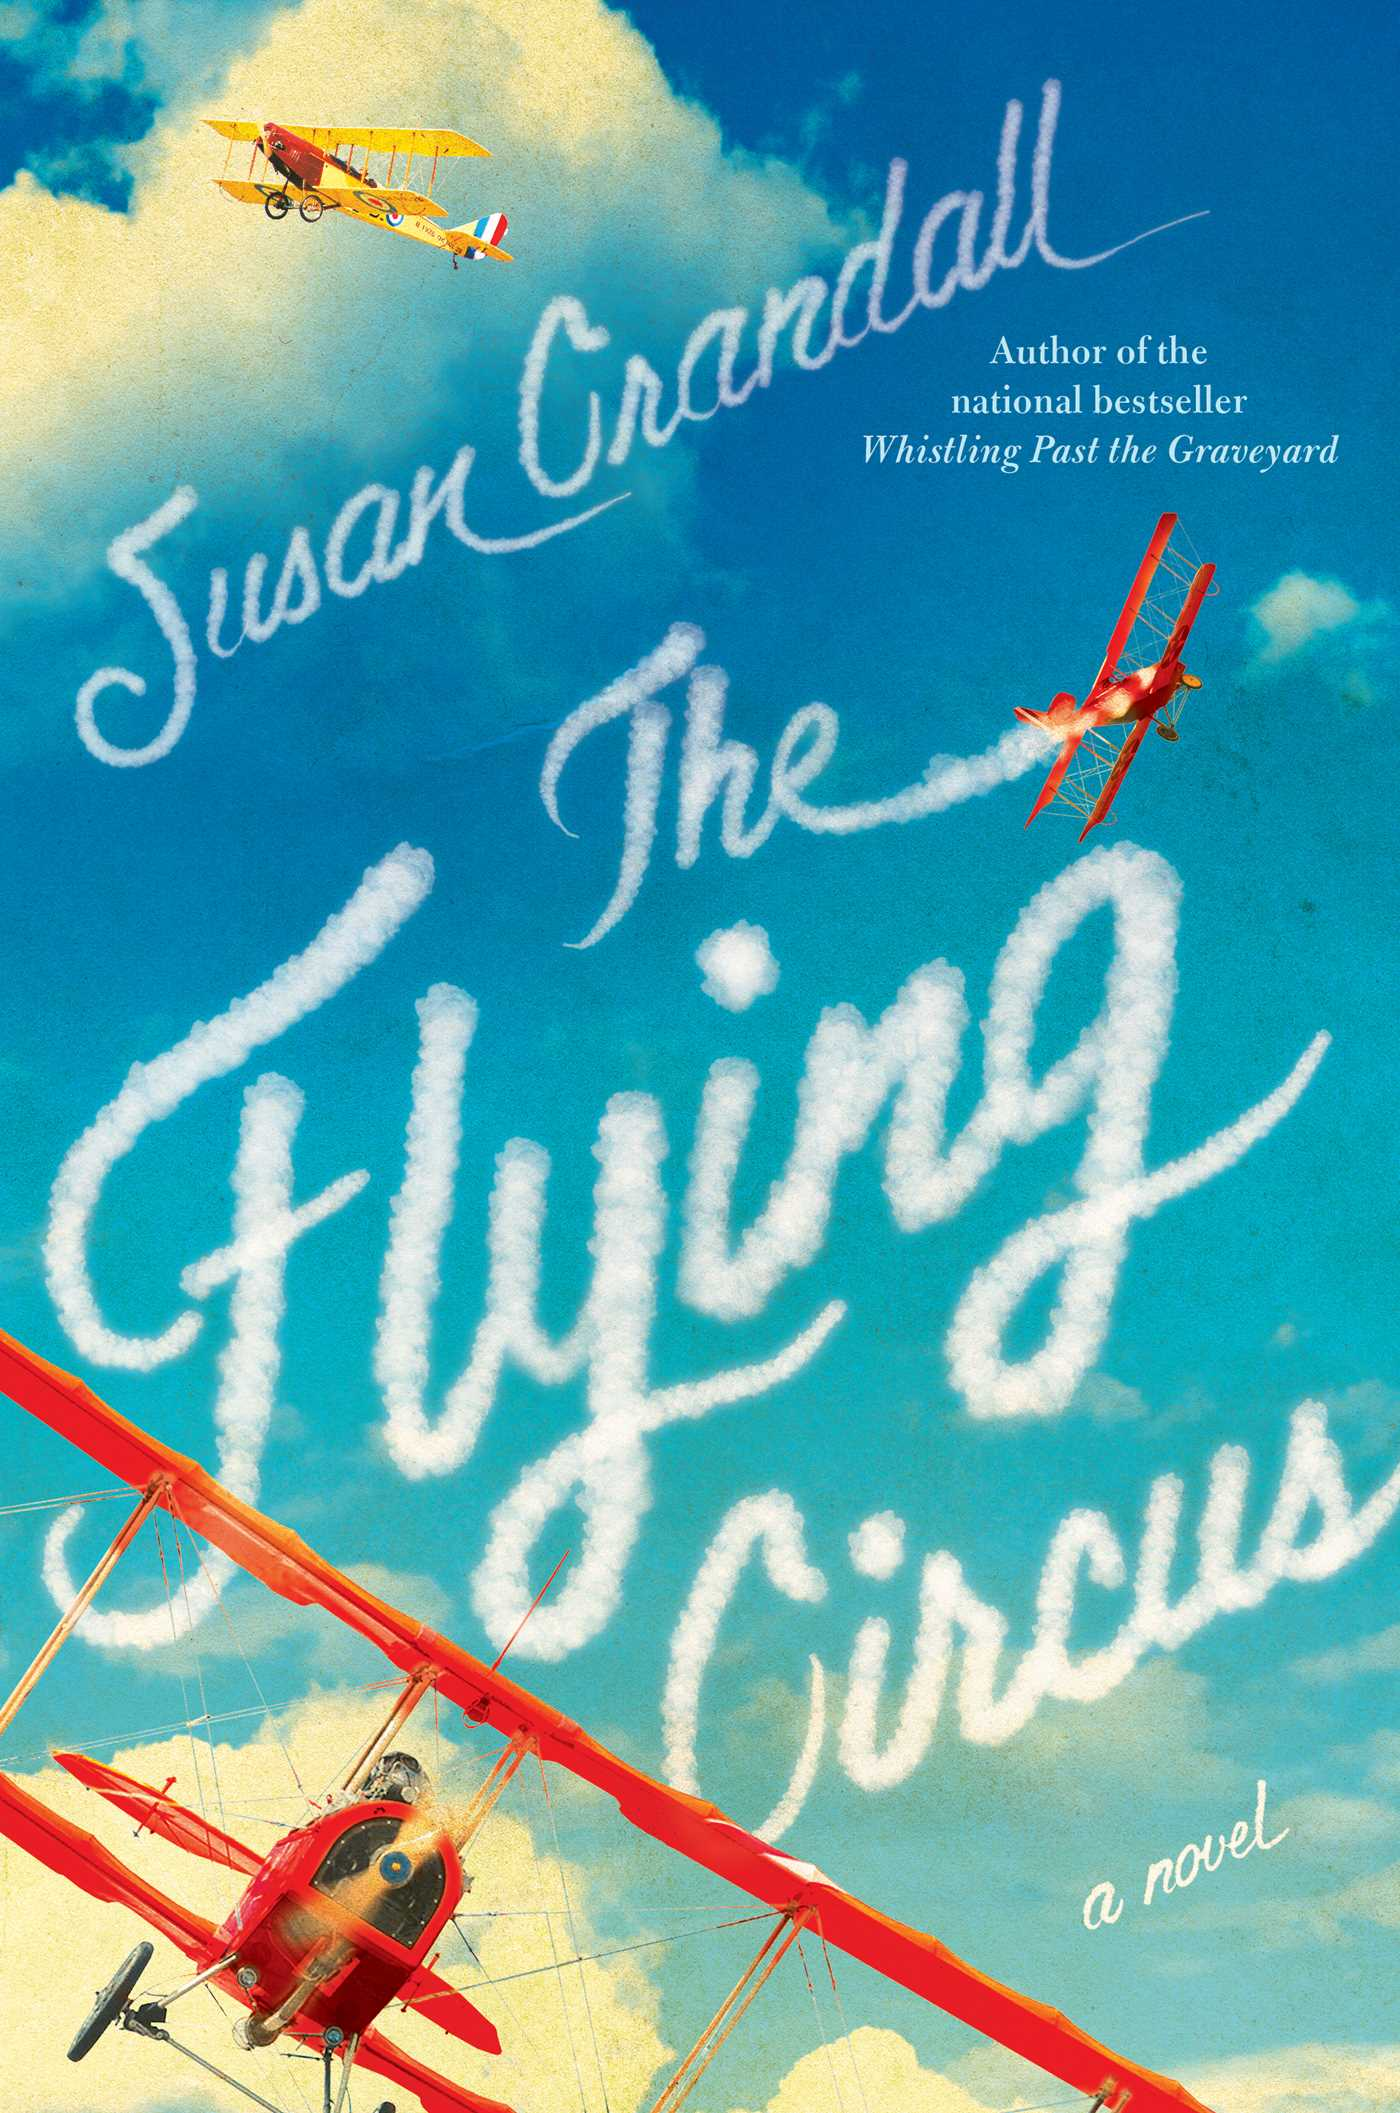 The-flying-circus-9781476772141_hr